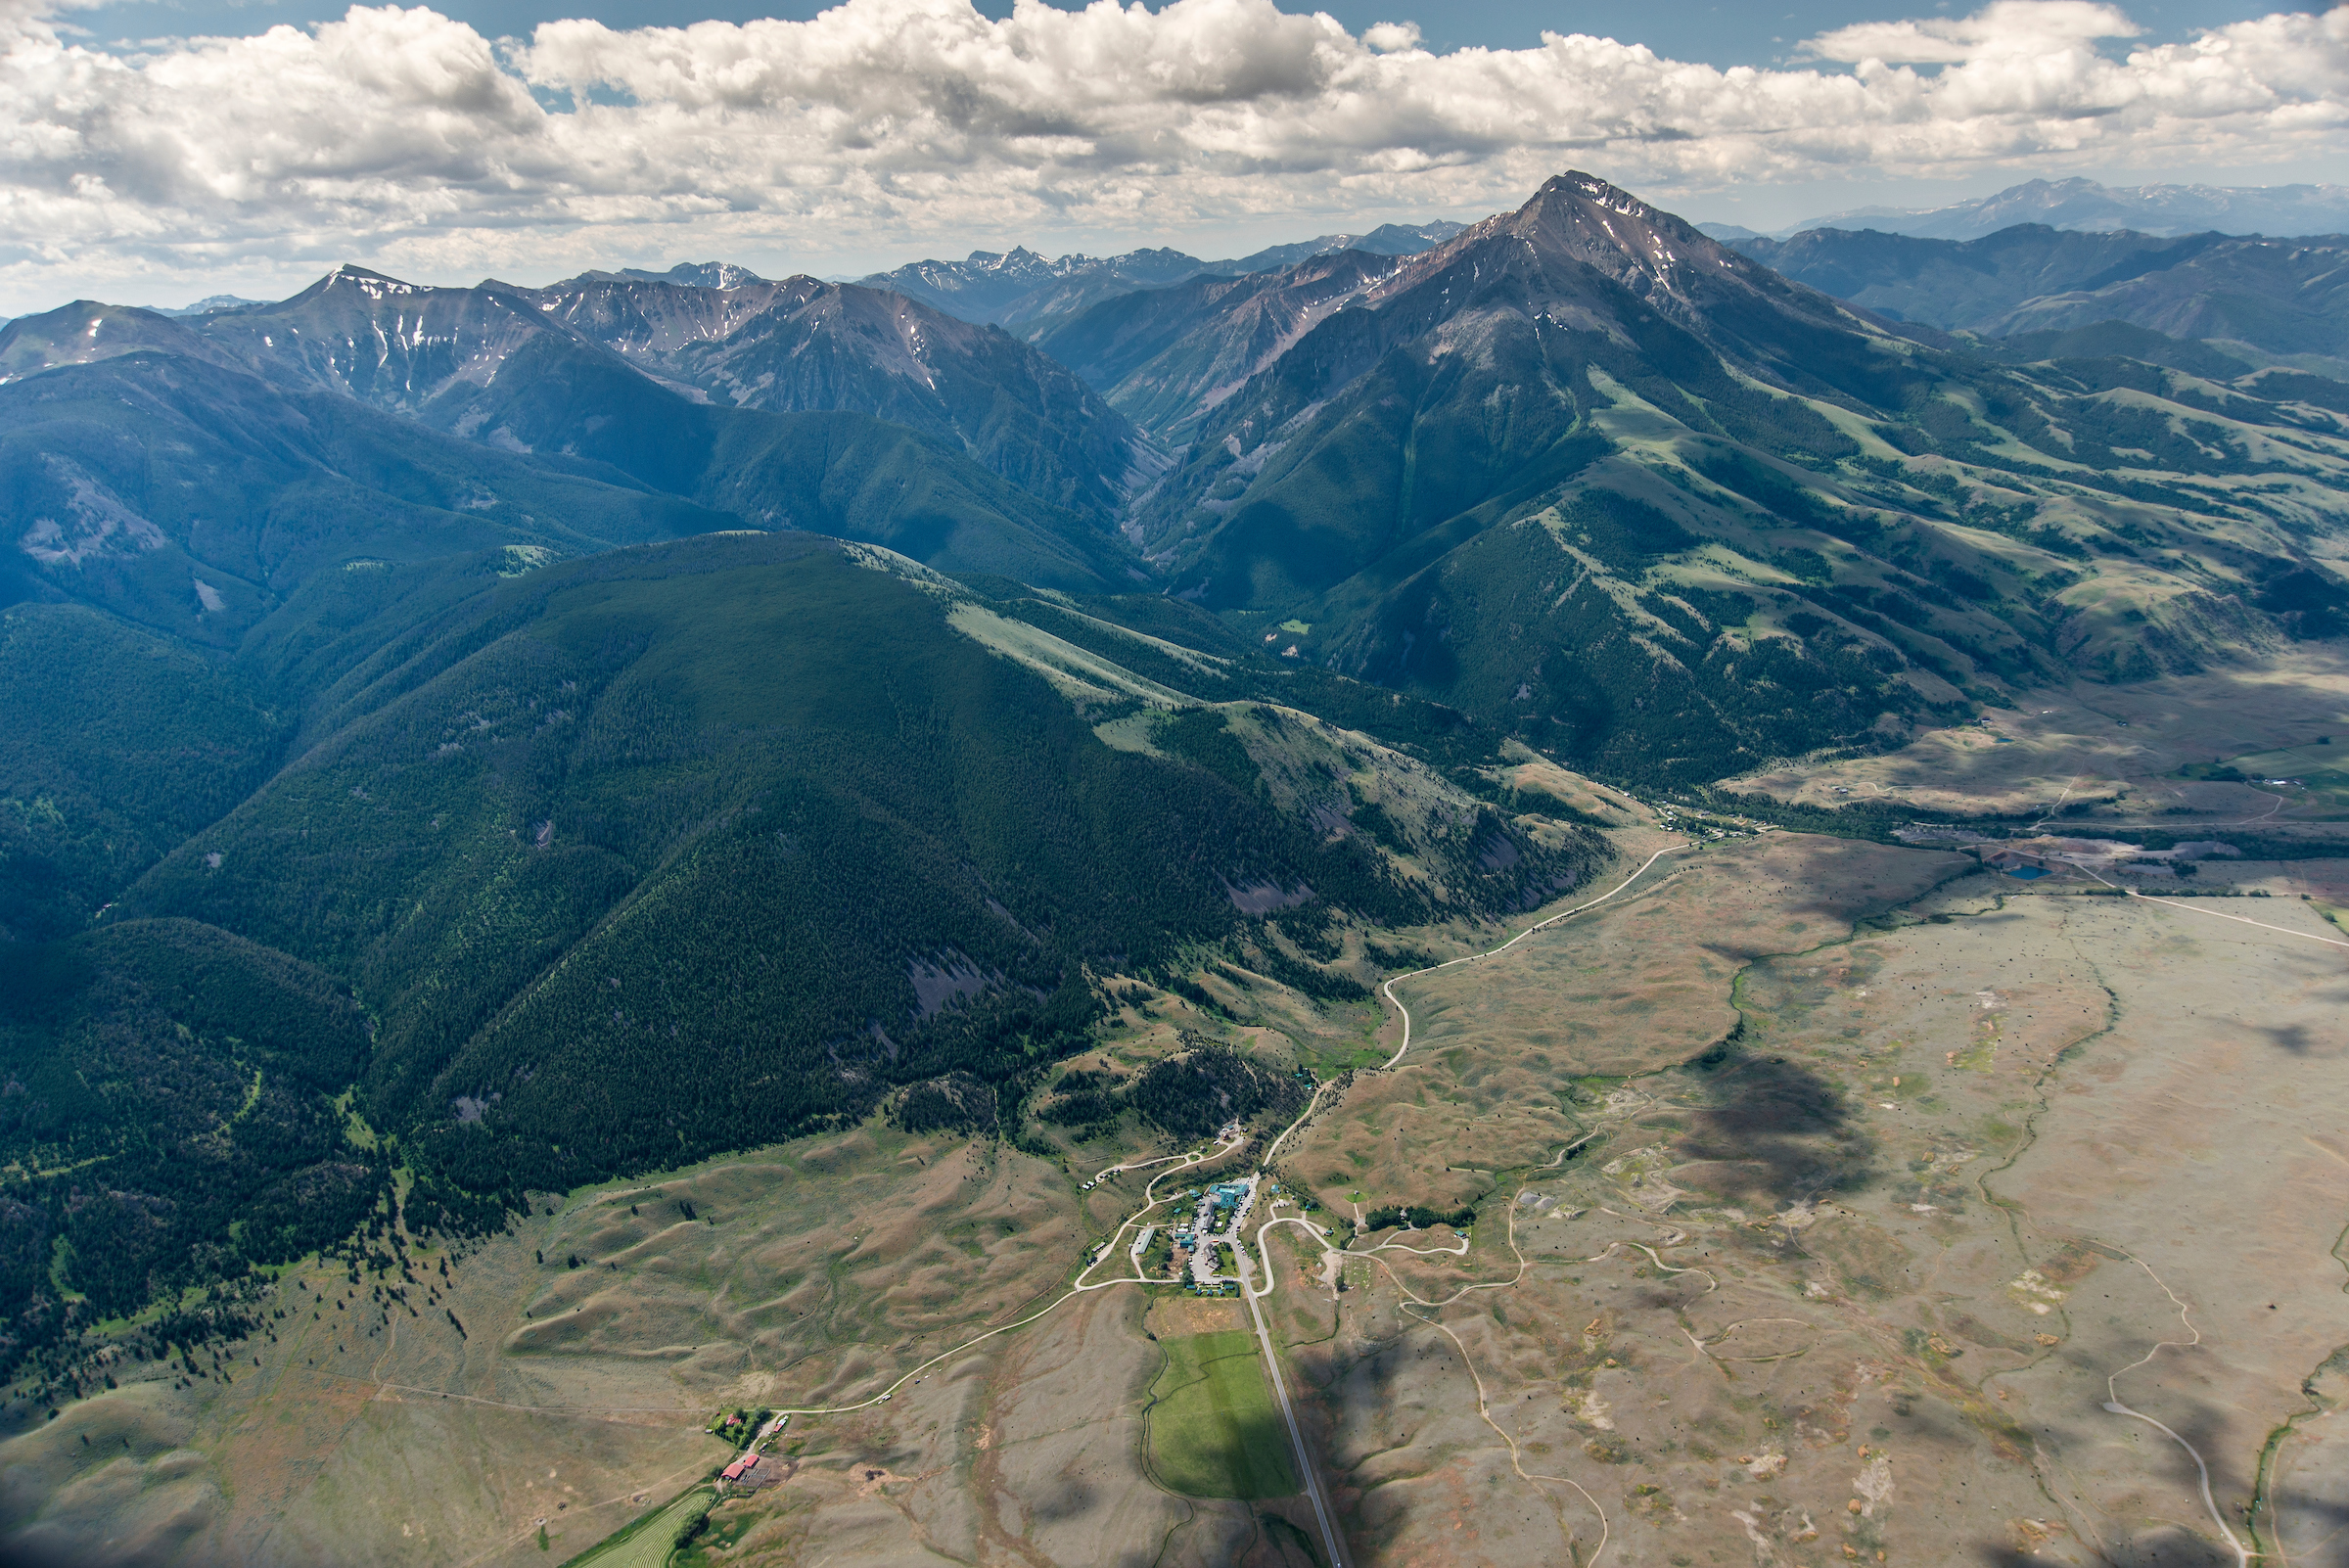 Emigrant Peak, in Montana's Paradise Valley north of Yellowstone. Both candidates for Montana's lone House seat this week opposed a risky proposed gold mine here, as well as one on Crevice Mountain, a half mile from the park border. (Photo Bill Campbell.)